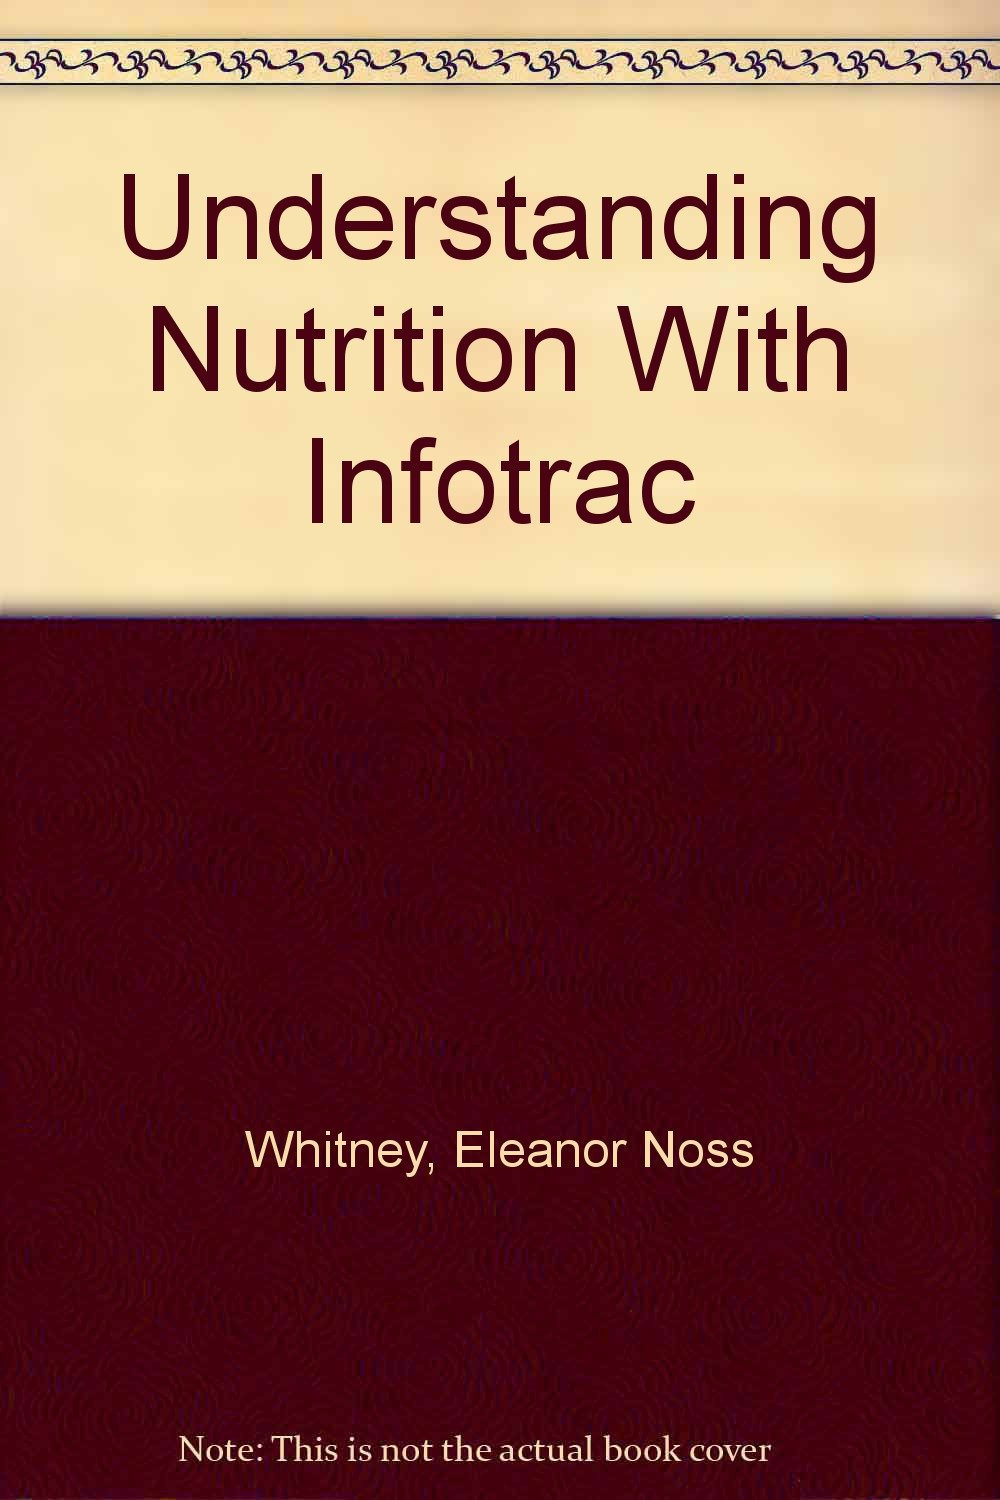 Understanding Nutrition With Infotrac: Amazon.co.uk: Eleanor Noss Whitney, Sharon  Rady Rolfes: 9780534099411: Books